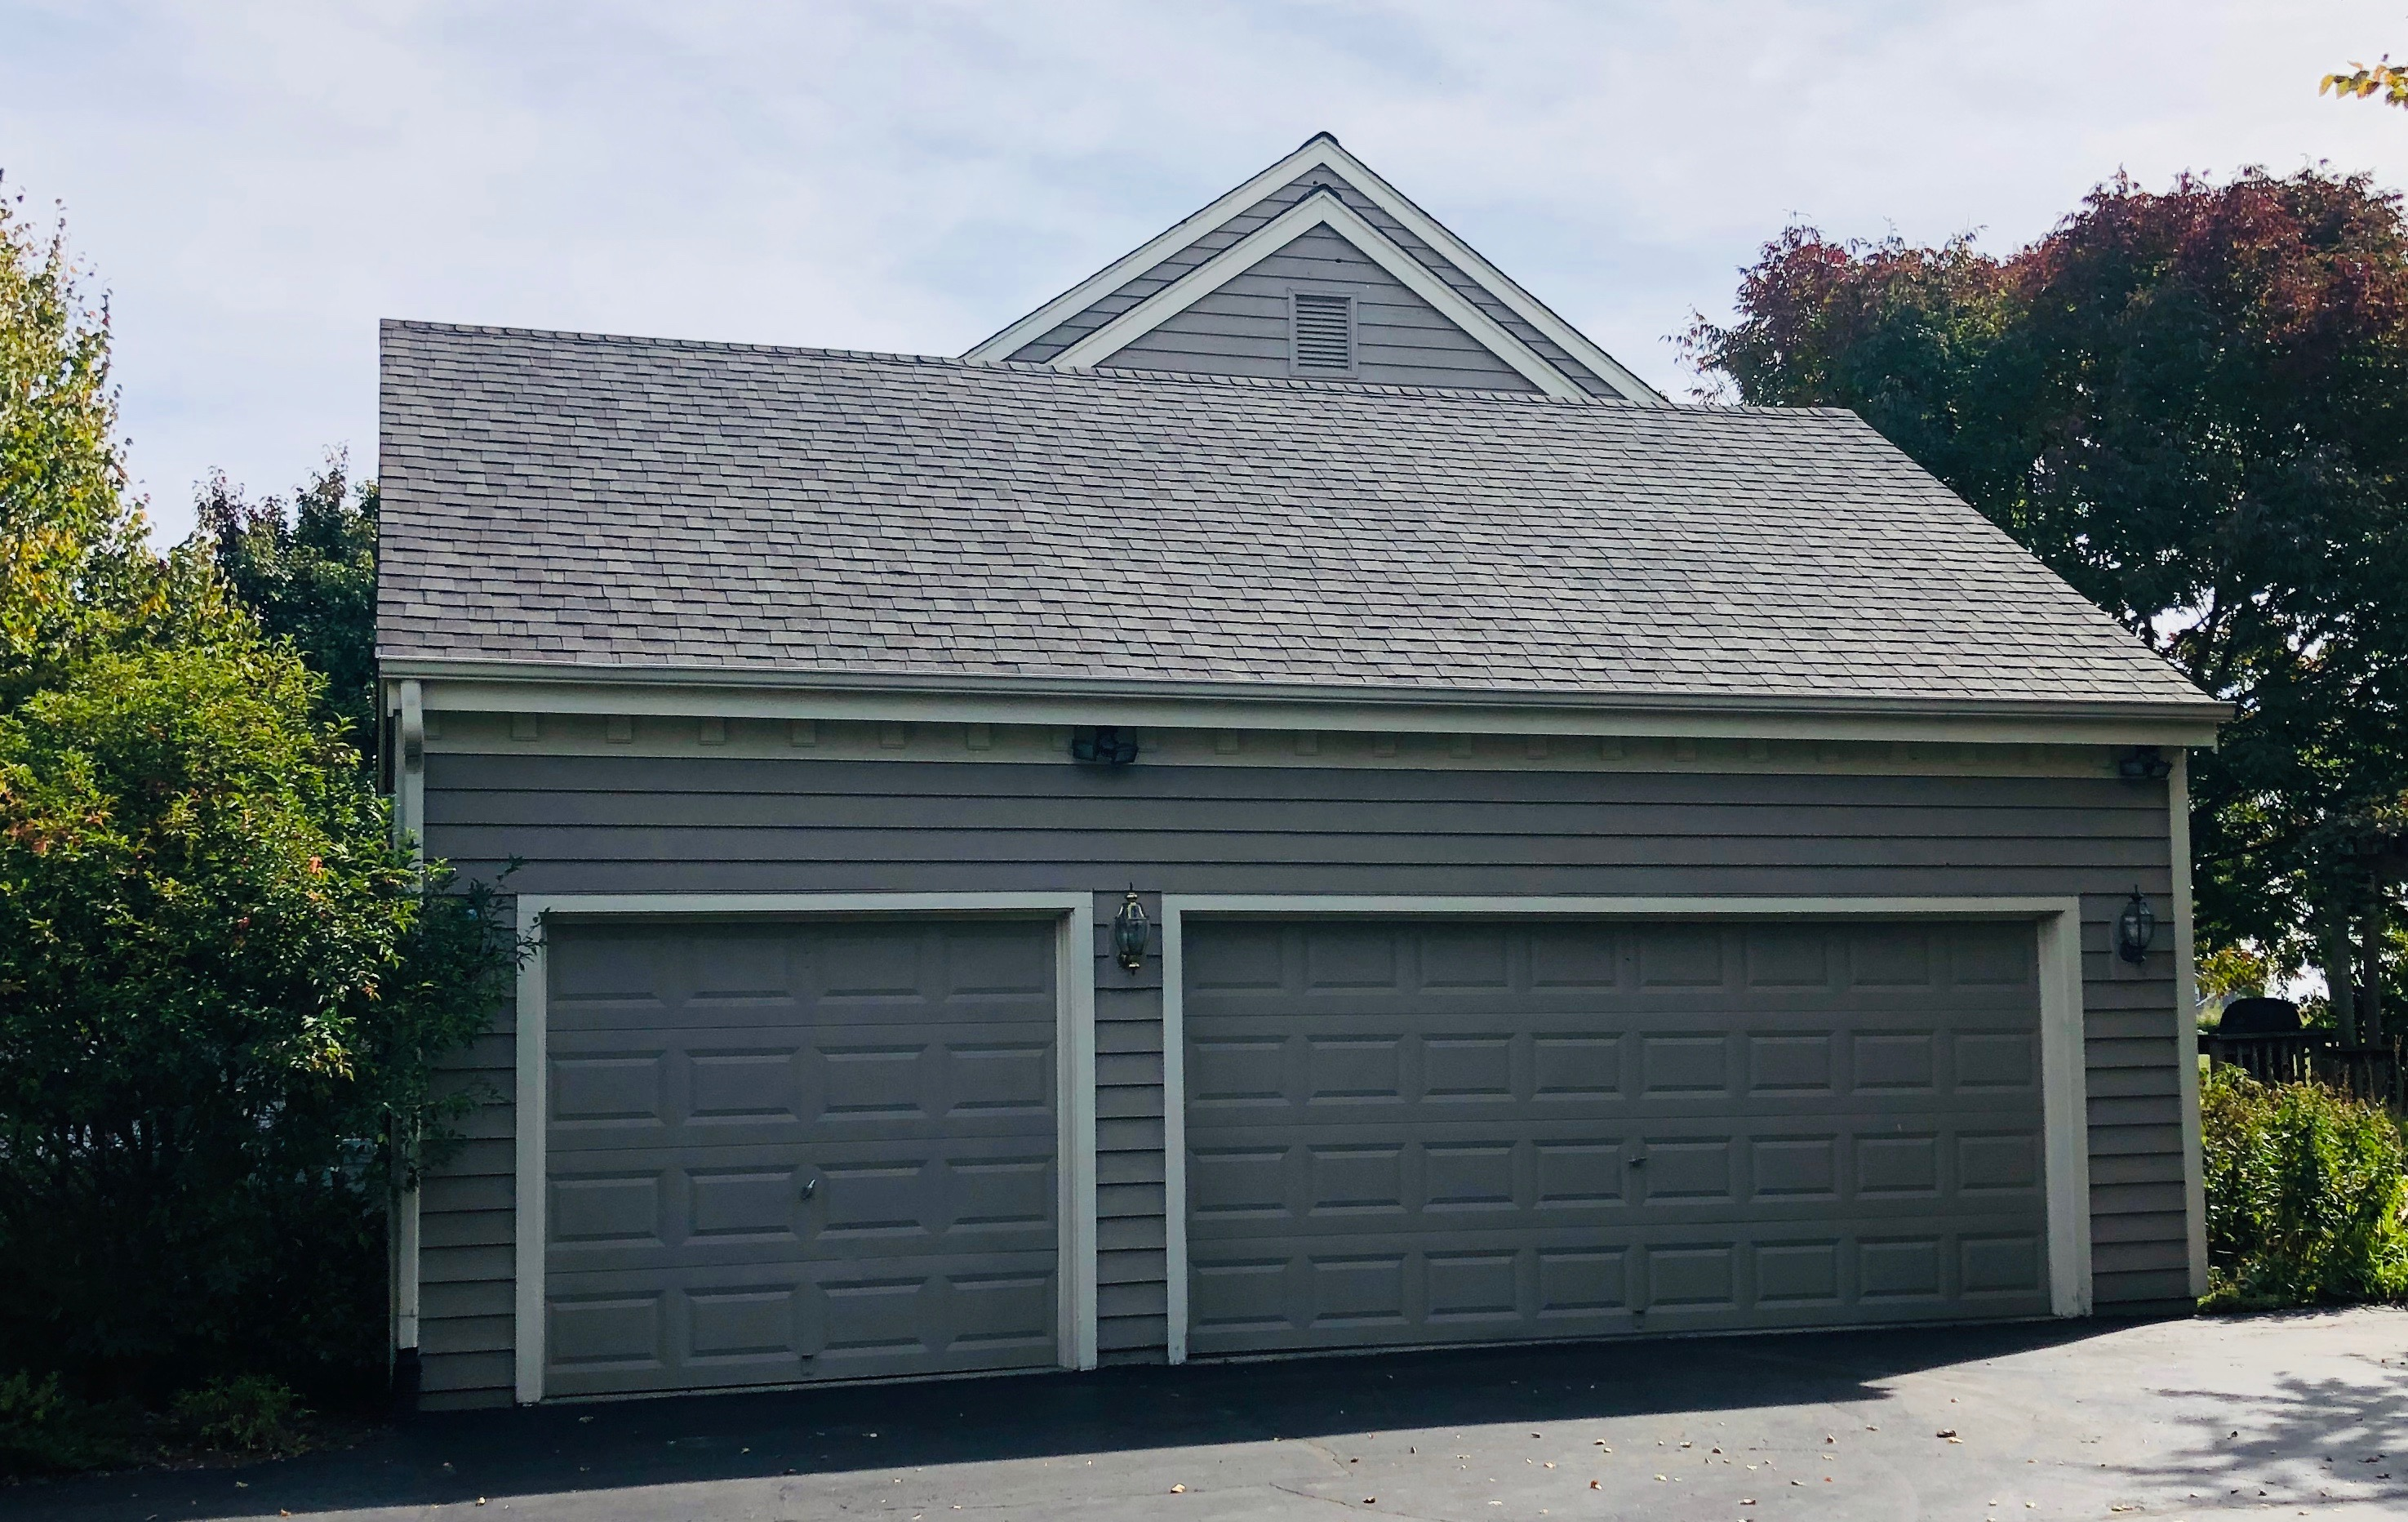 Wisconsin Roofing LLC | Mequon | Updated Roof | Used Synthetic underlayment felt | CertainTeed Landmark AR Weatherered Wood | Garage